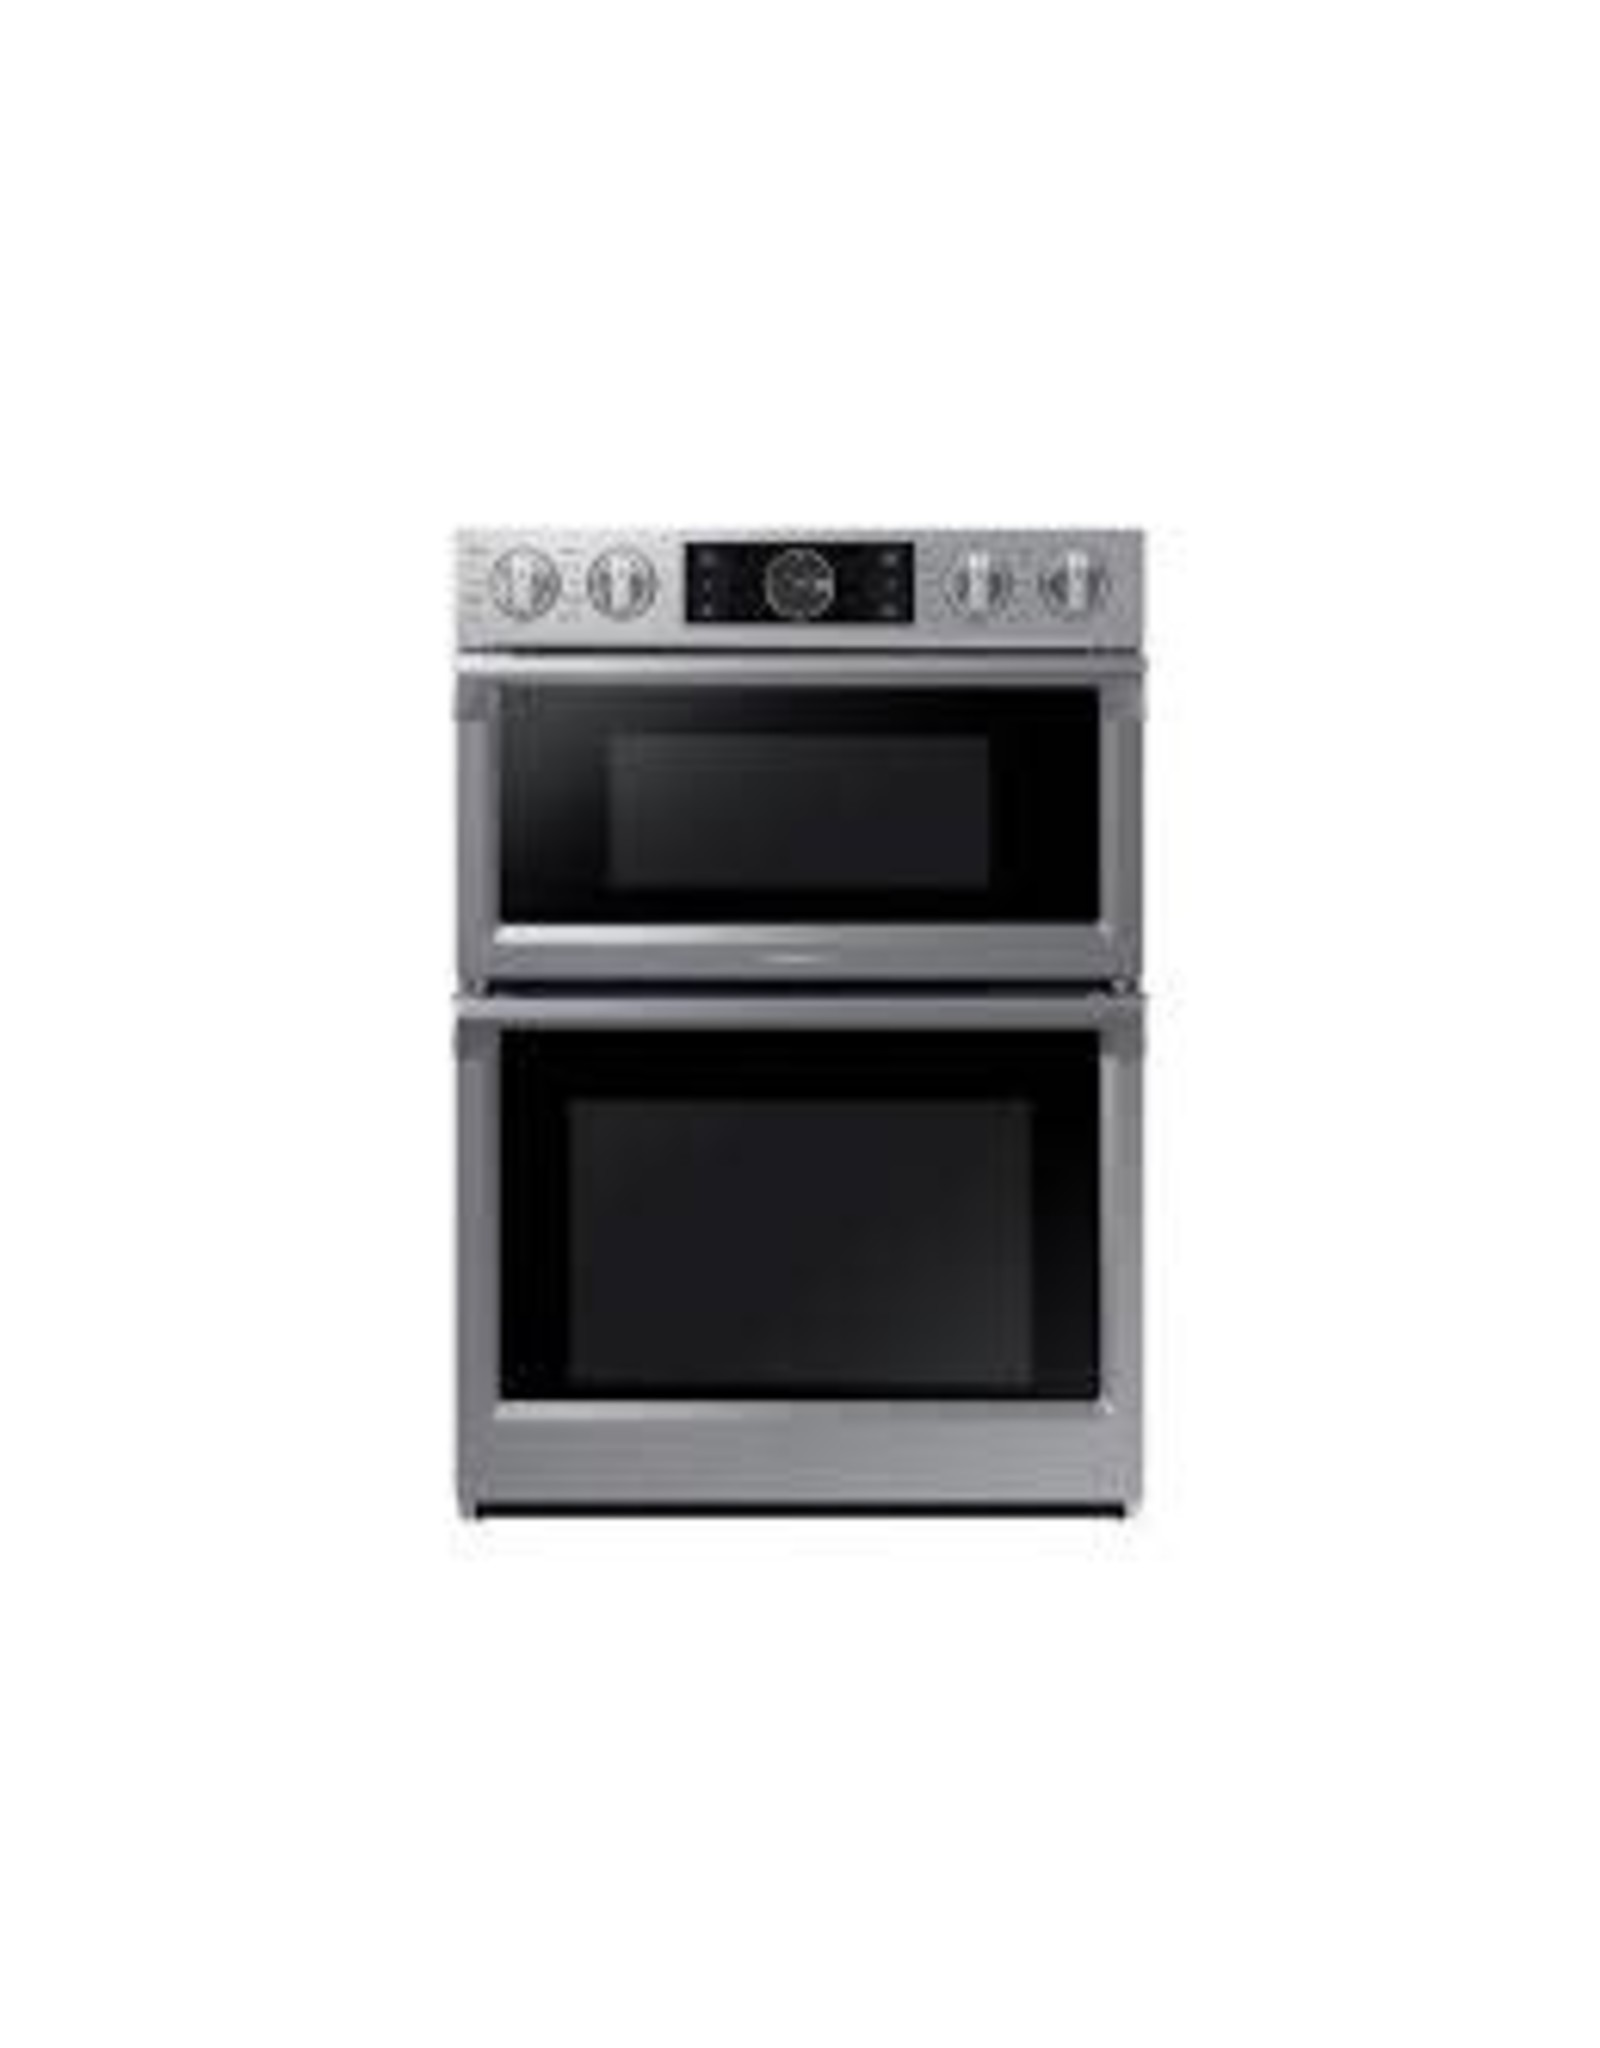 SAMSUNG NQ70M7770D30 in. Electric Steam Cook, Flex Duo Wall Oven Speed Cook Built-In Microwave in Stainless Steel